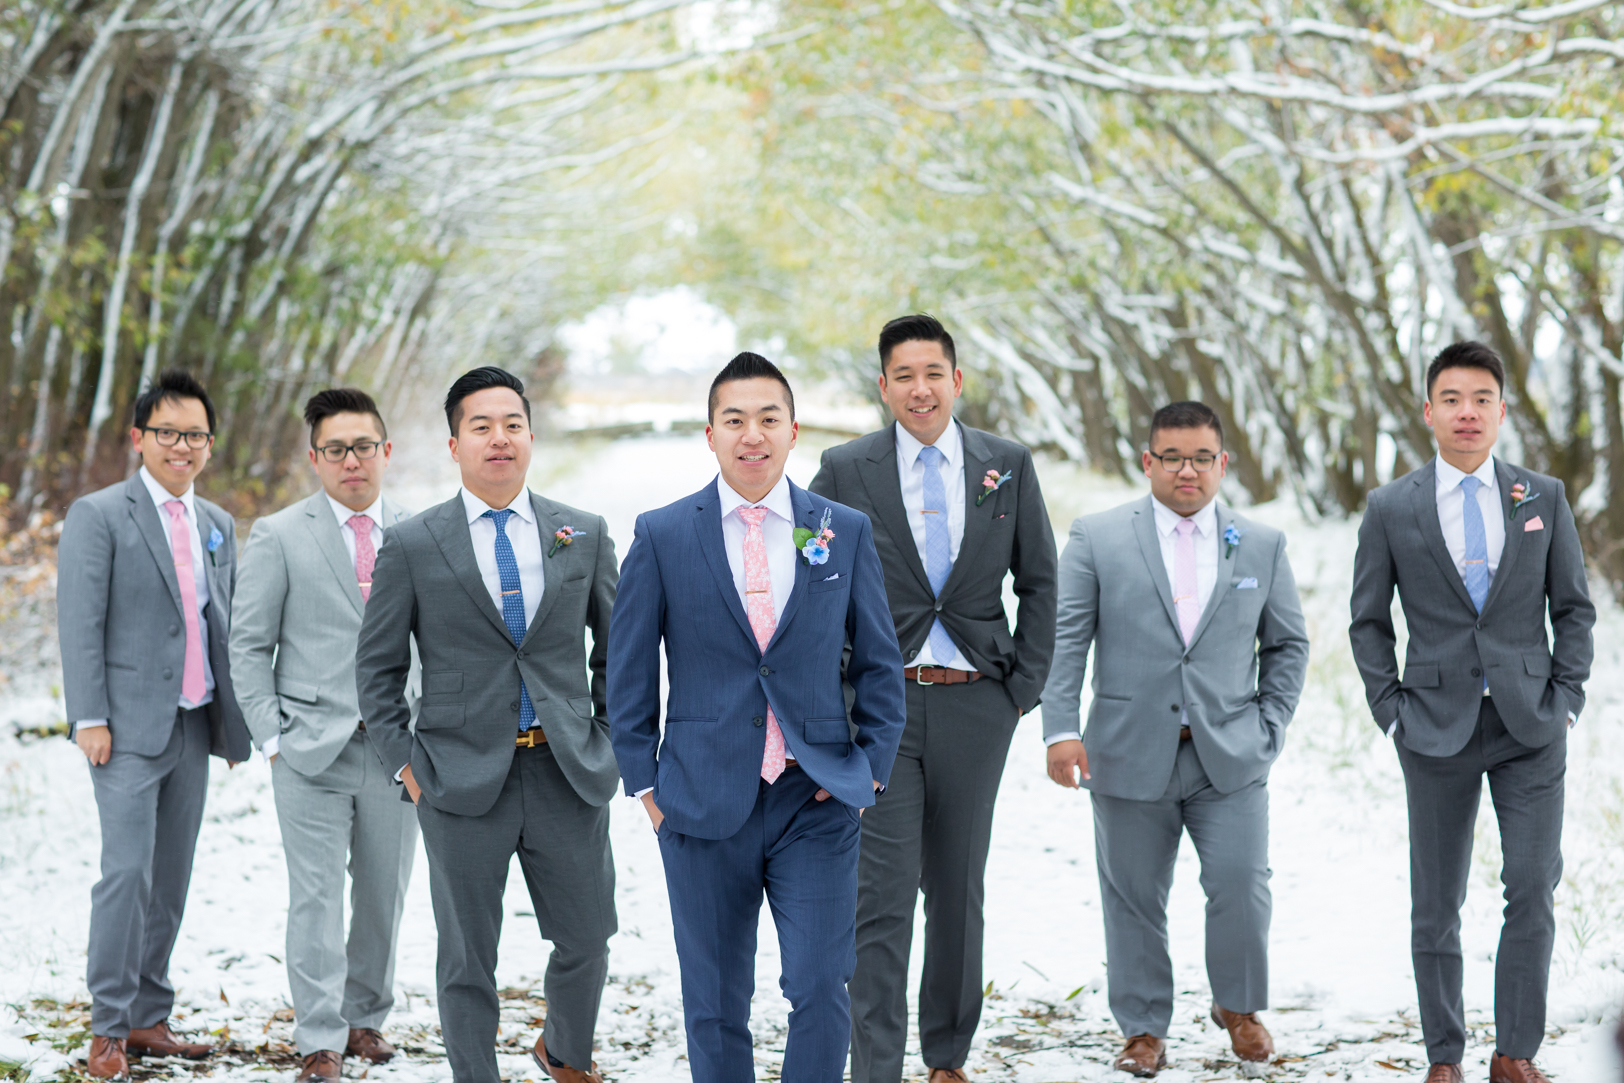 Groomsmen At An Edmonton Autumn Wedding